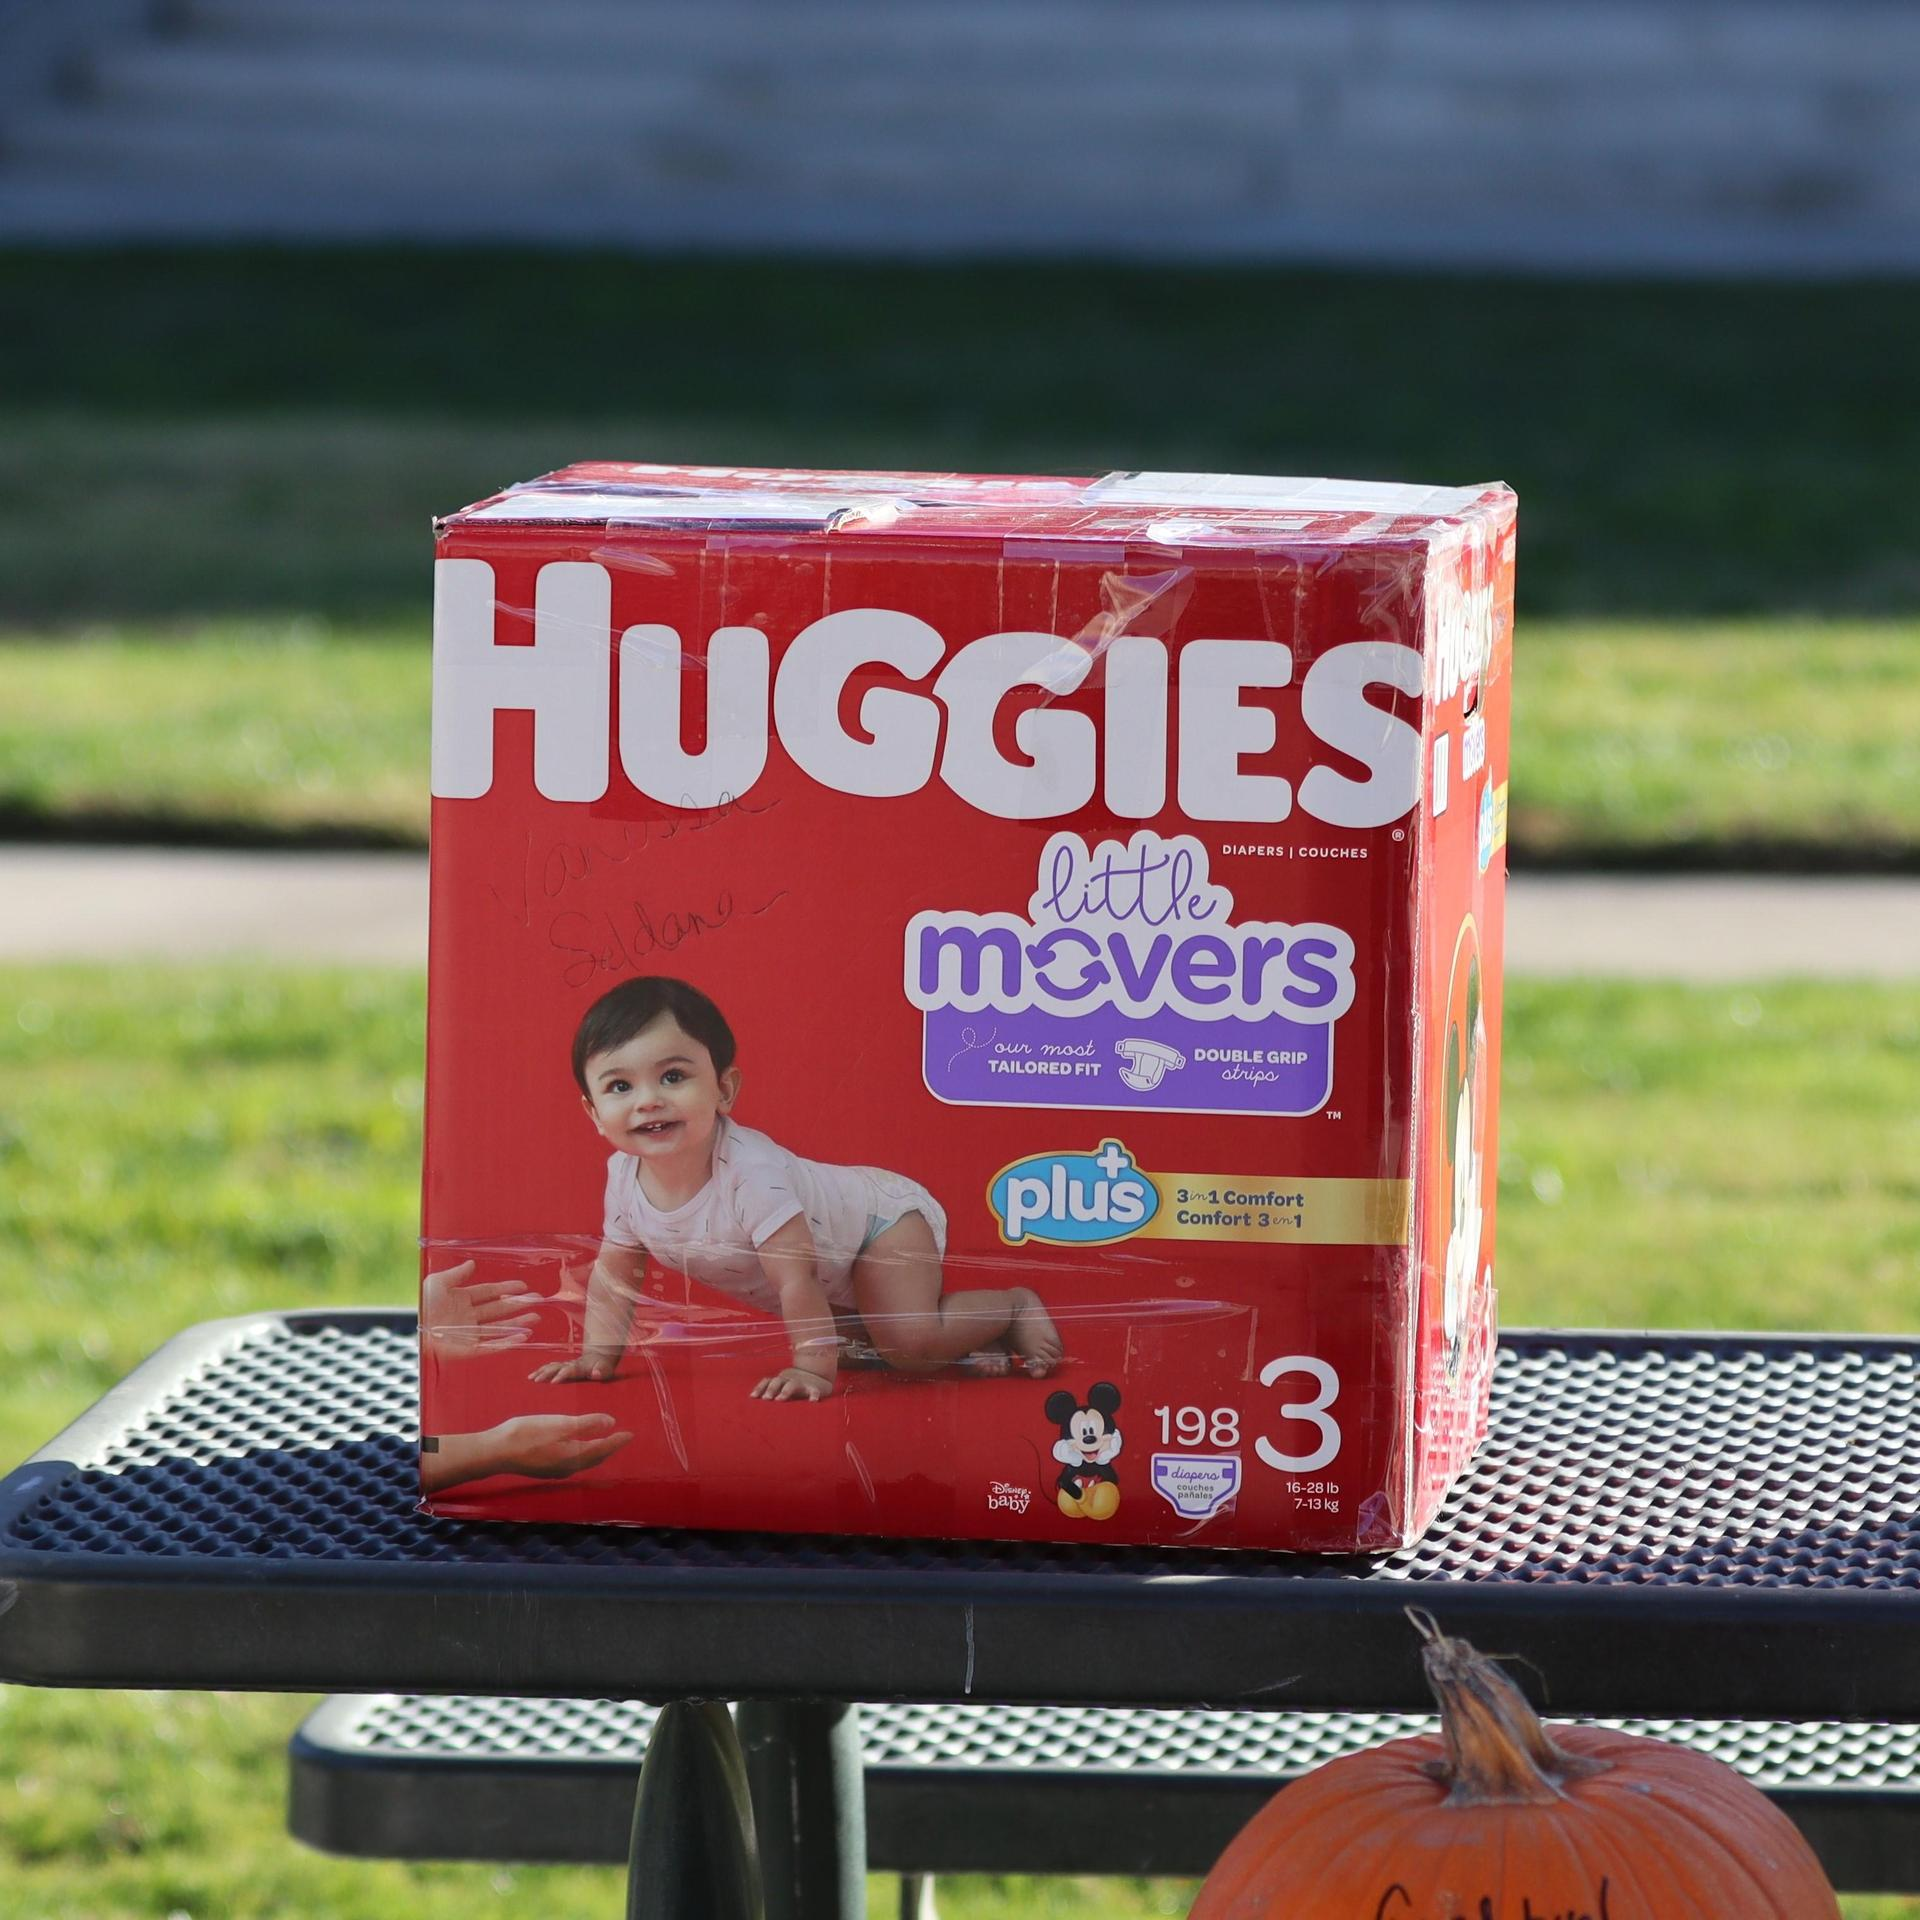 Vanessa Saldana Lopez's Entry 'Huggies' Pumpkin Before Being Dropped.